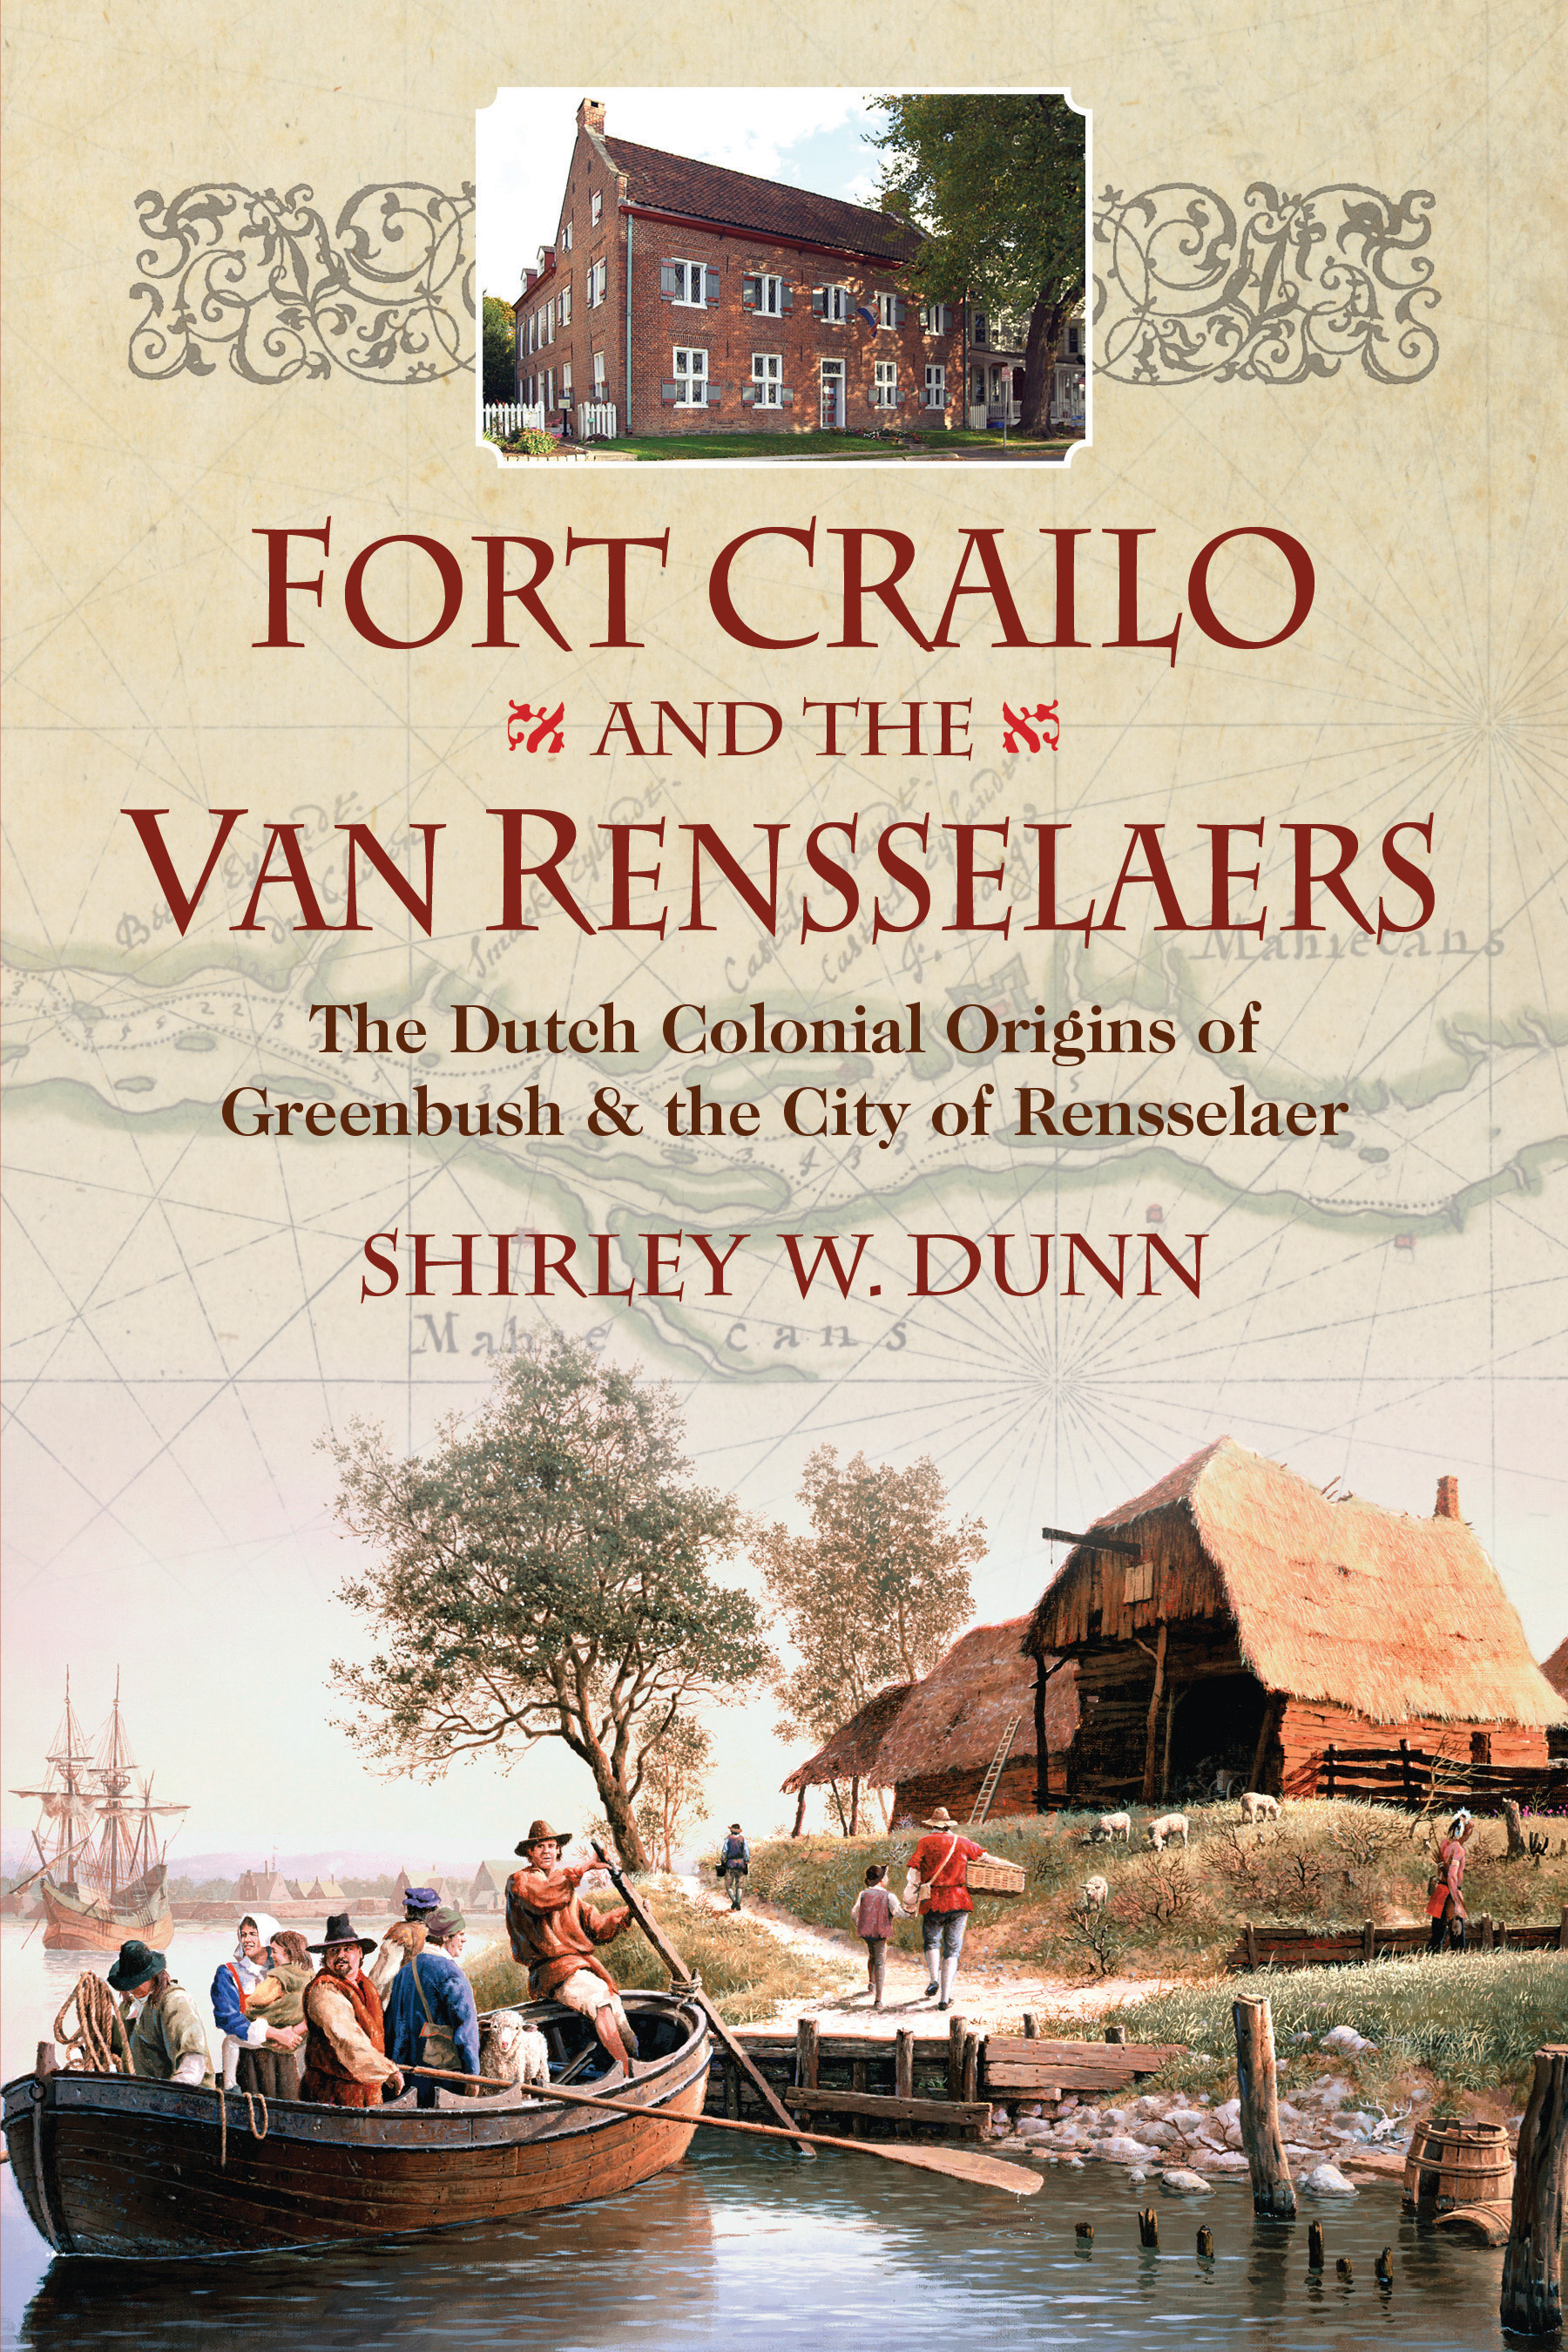 Fort Crailo and the Van Rensselaers